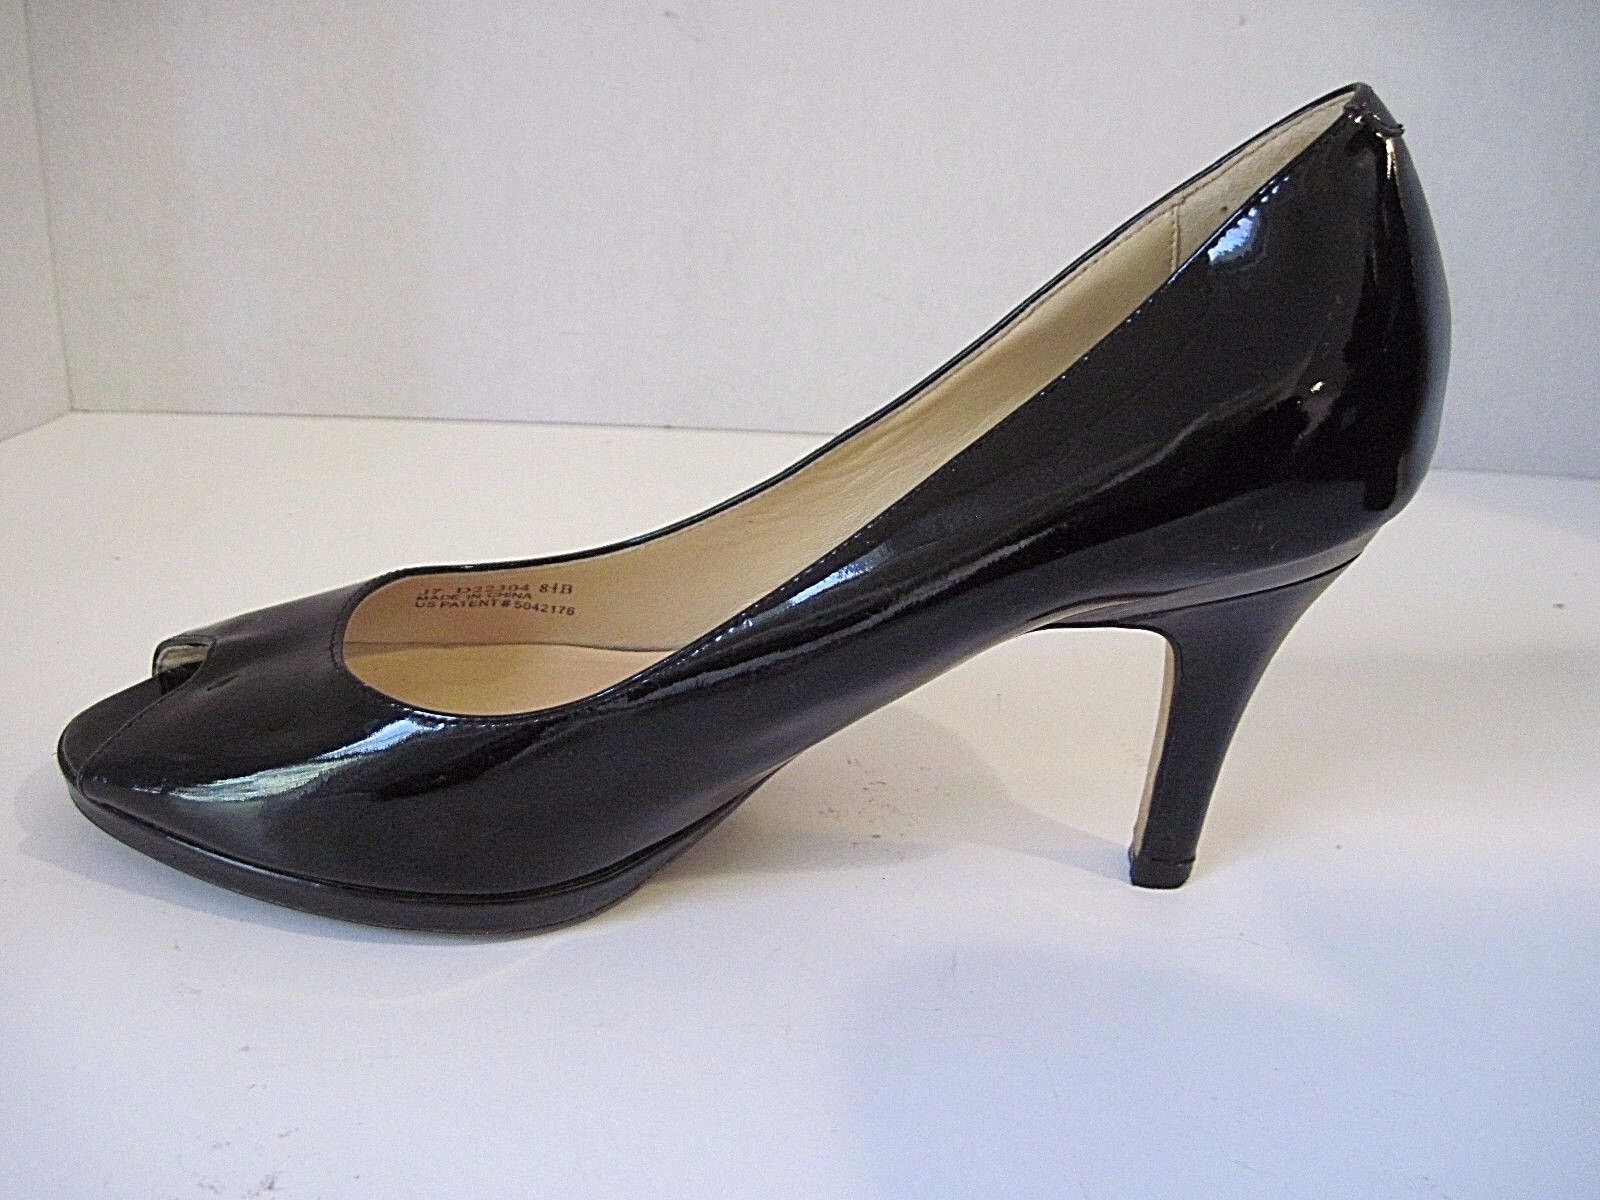 Cole Haan Collection Nike Air Black Patent Leather Open Toe Heels - Size 8 1 2B